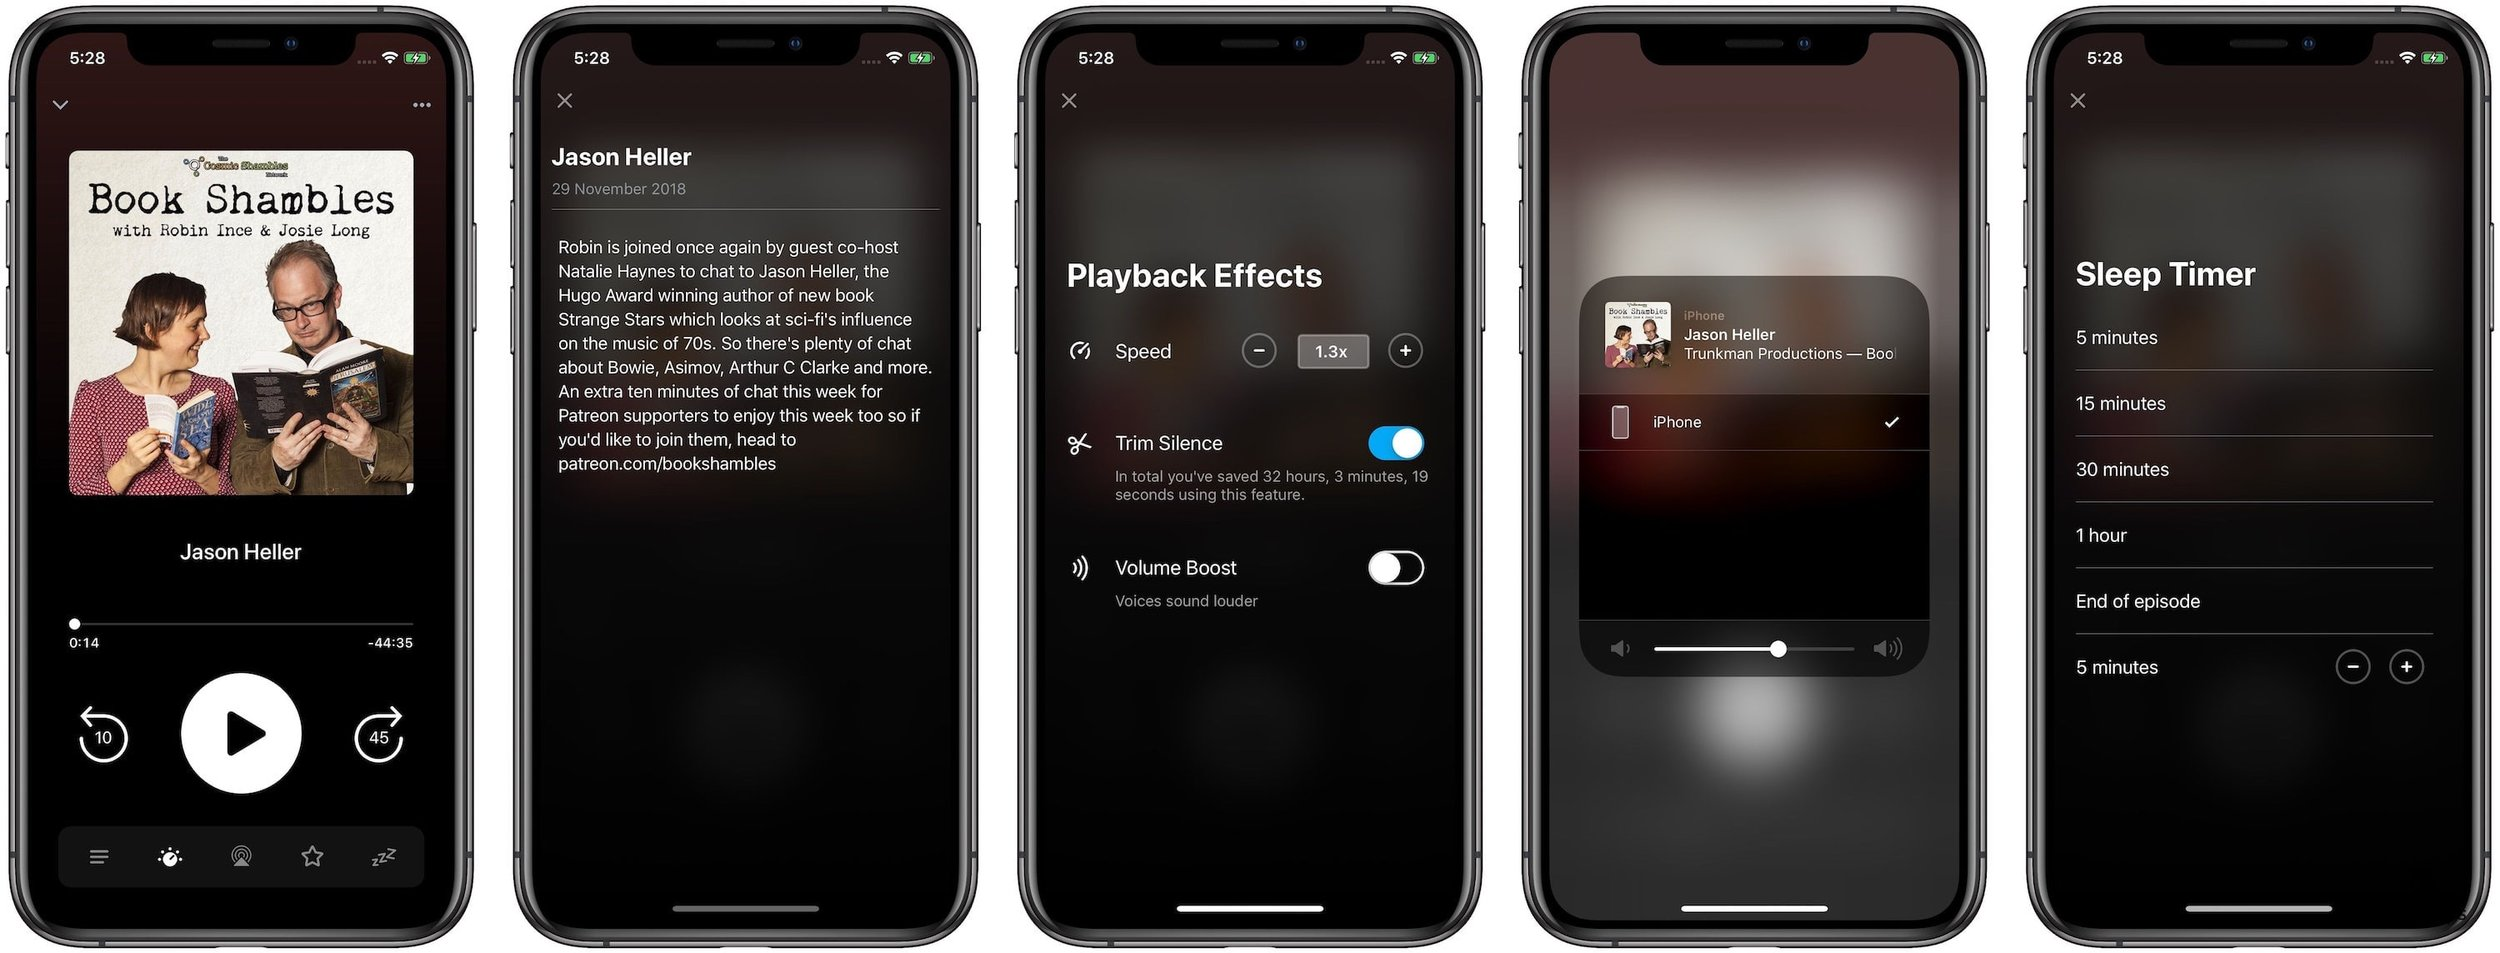 Pocket Casts 7 Review - The Playback Features.jpg